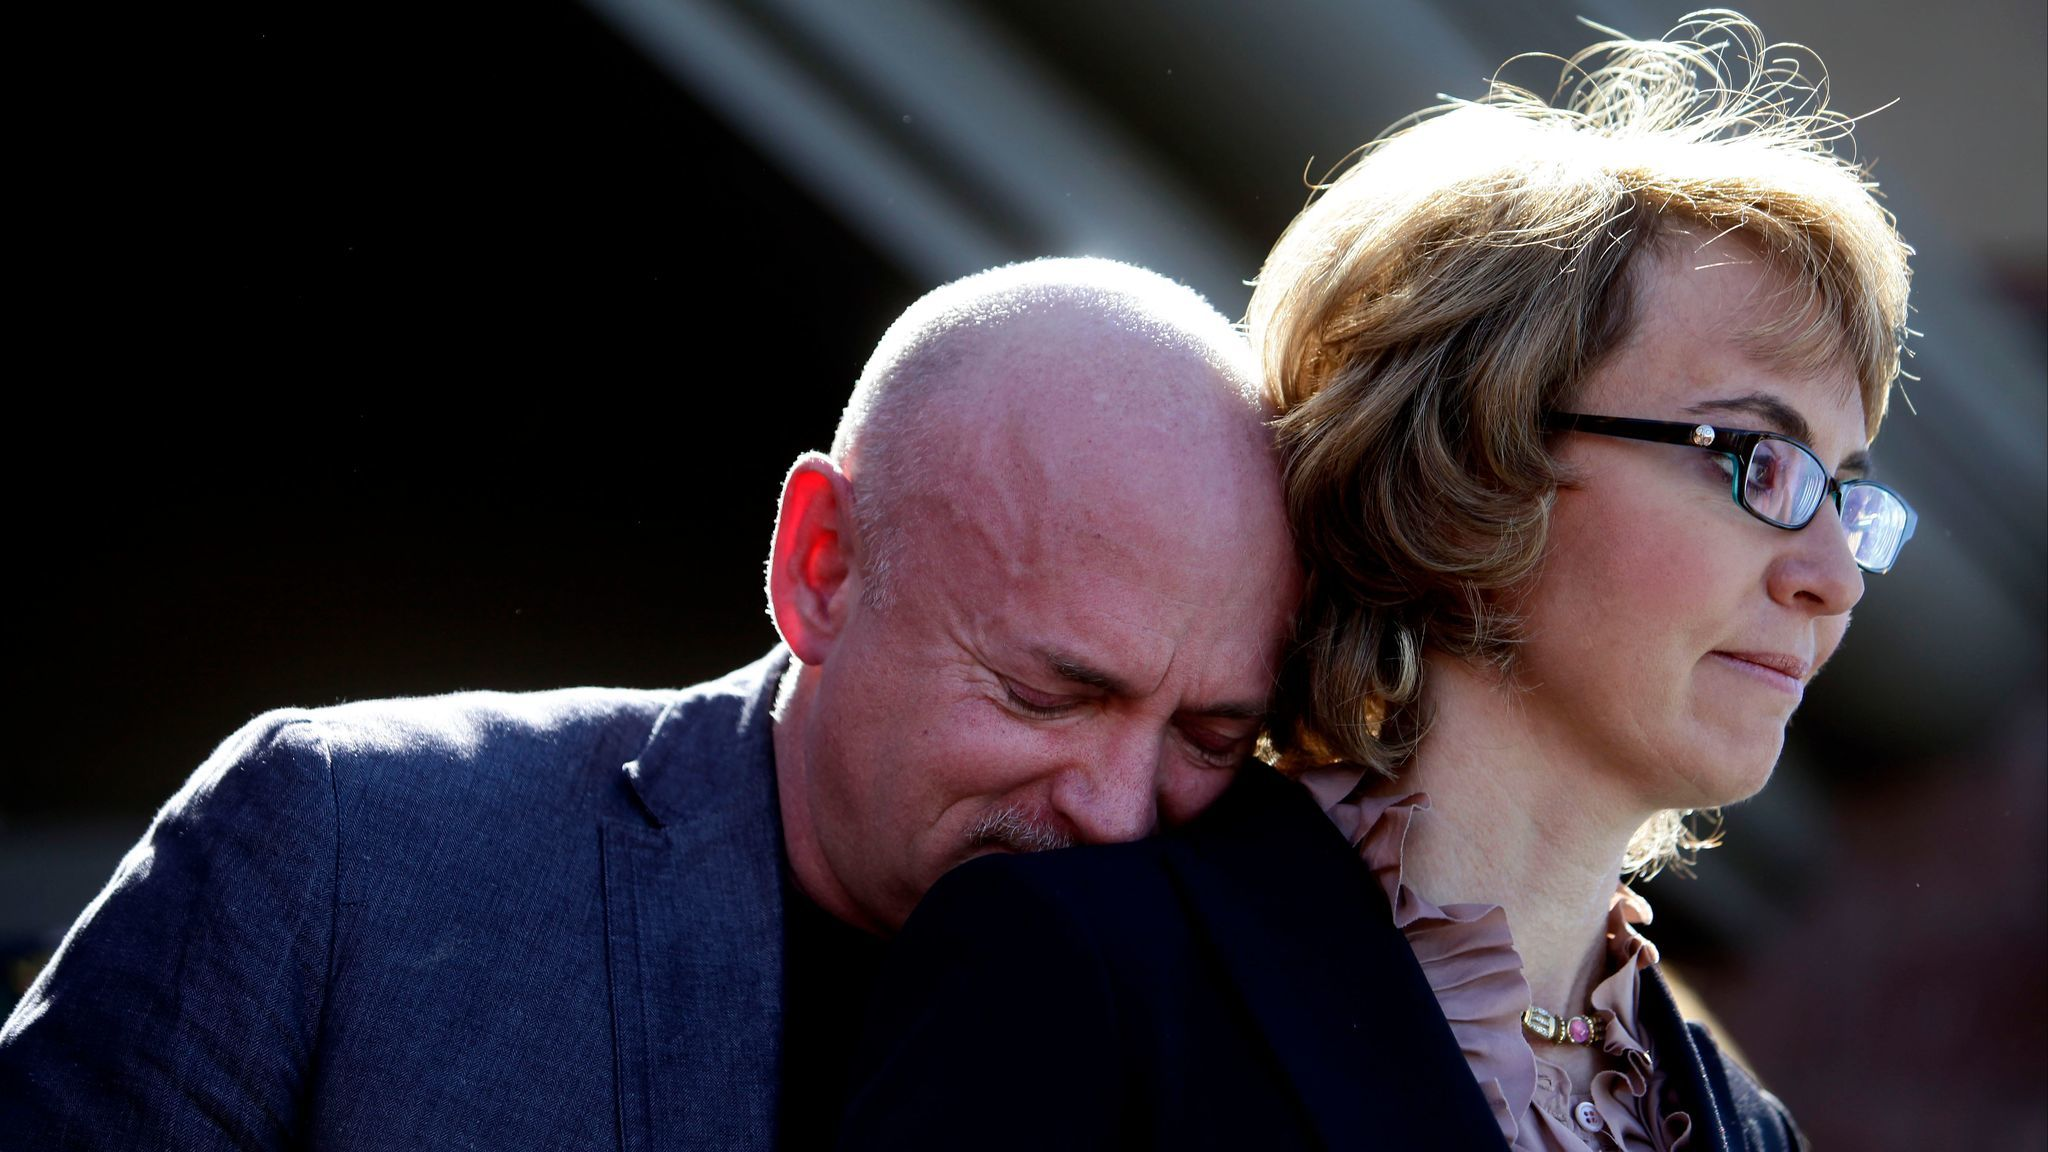 Former U.S. Rep. Gabby Giffords of Arizona and her husband, Mark Kelly, at a 2013 news conference in Tucson where they asked Congress to pass stricter gun control legislation